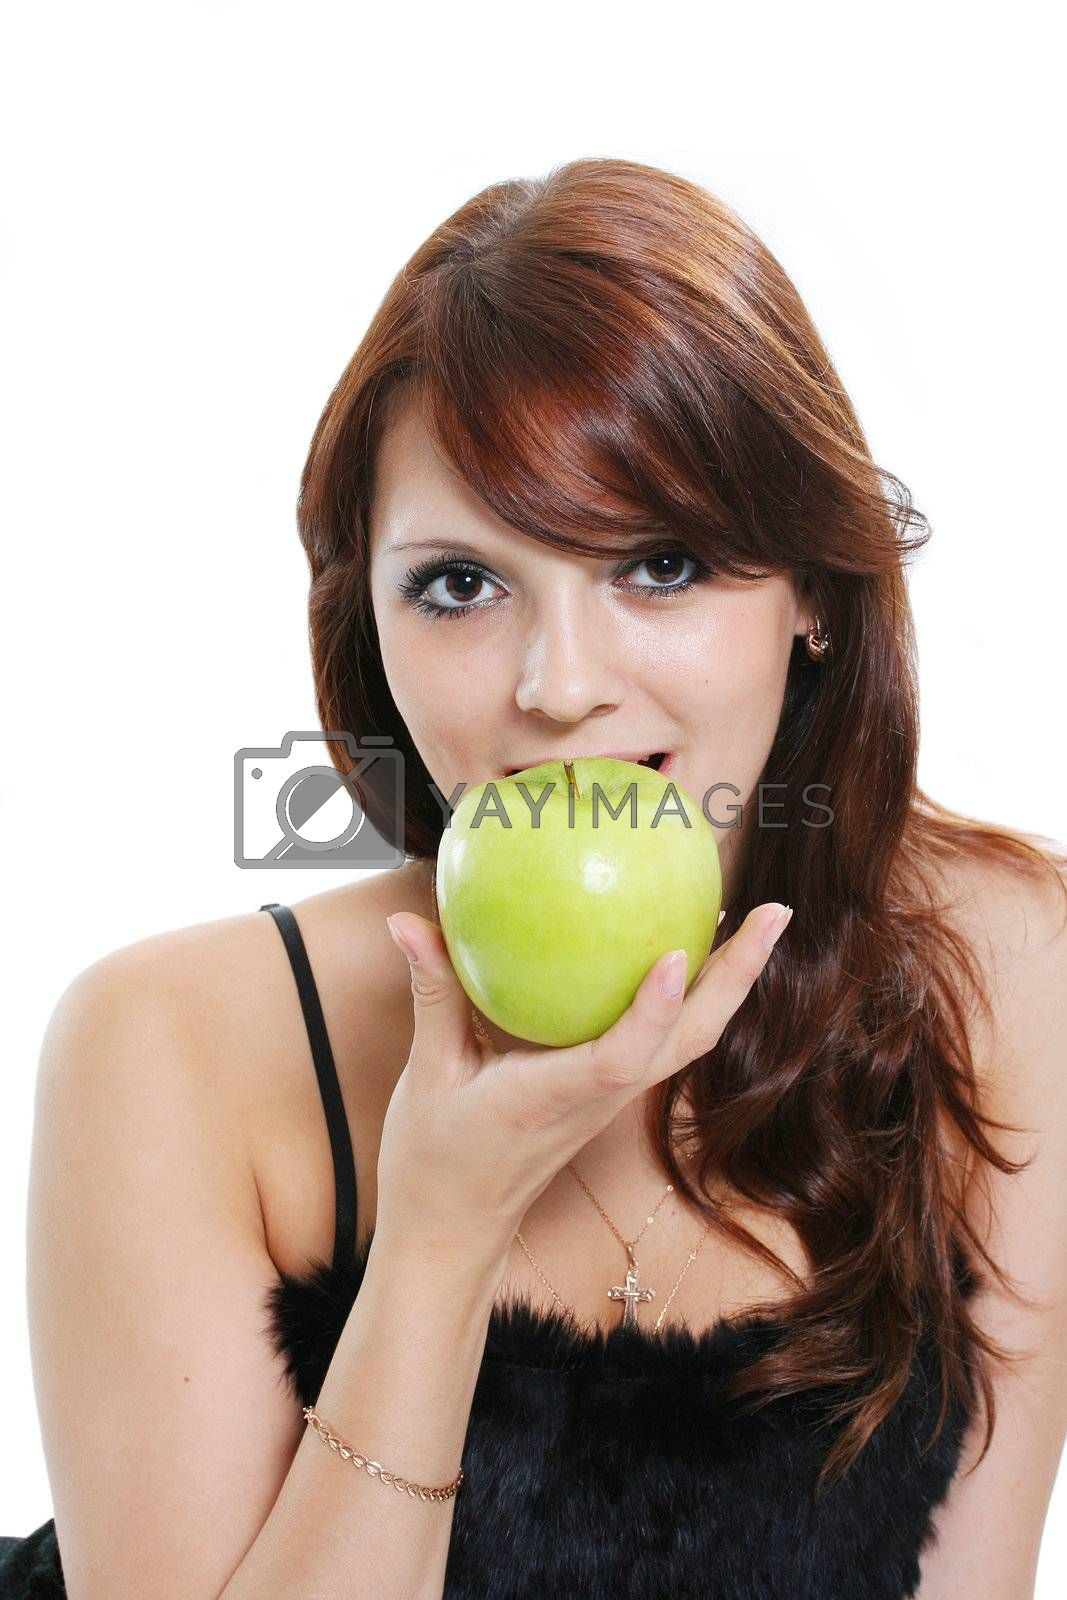 young person beauty fruit beautiful lifestyles eyes